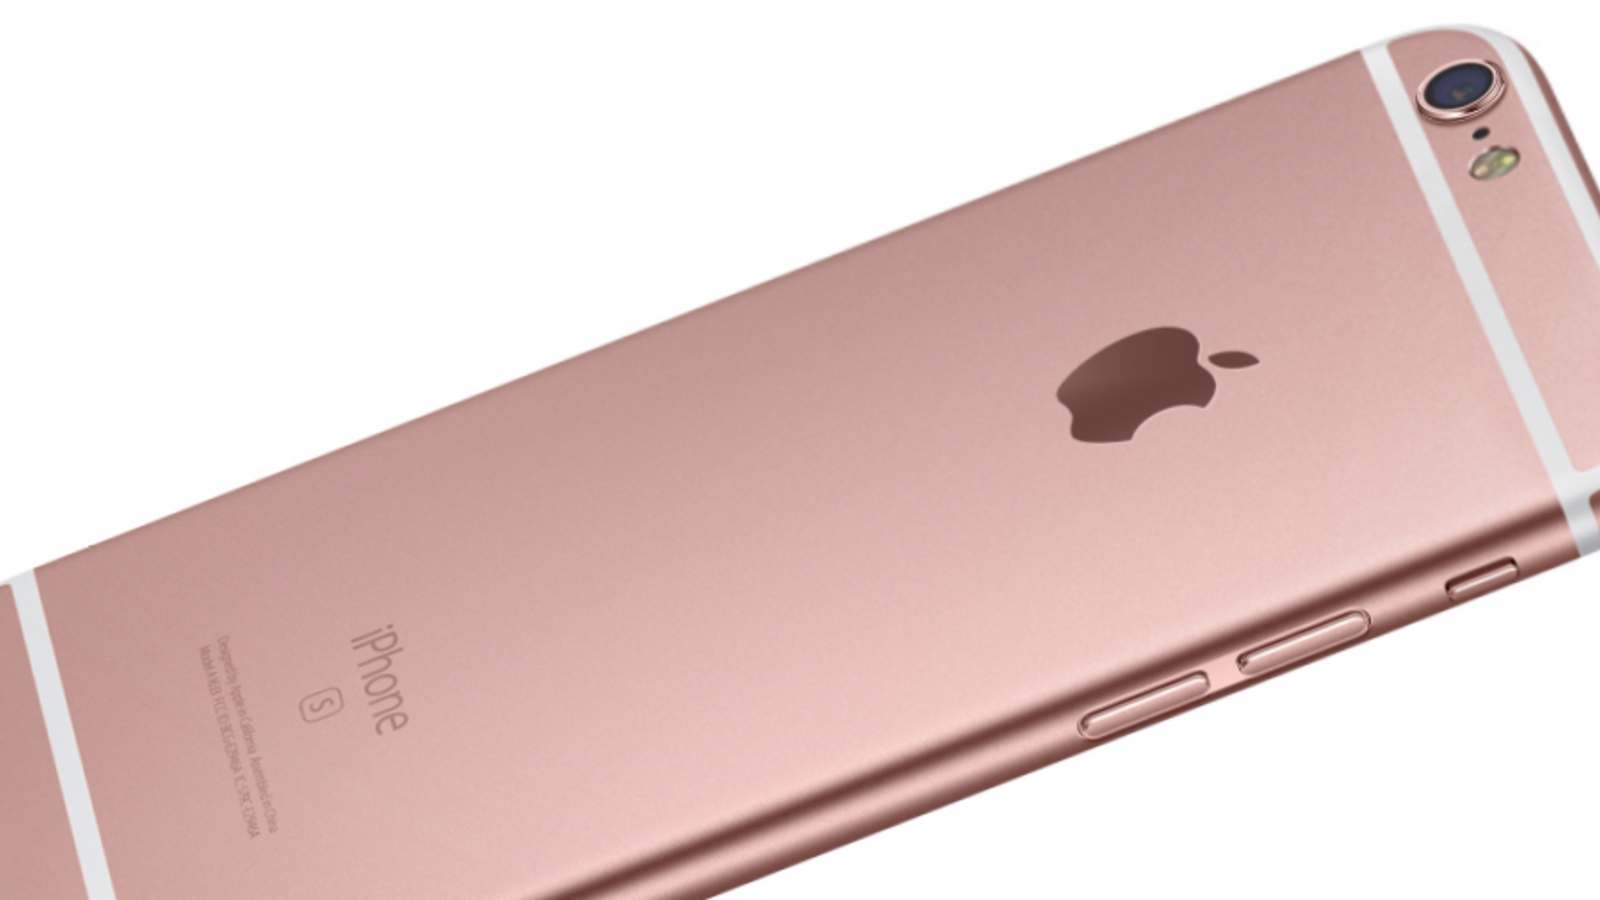 Iphone 4s macmyth - How Rose Gold Became The New Black